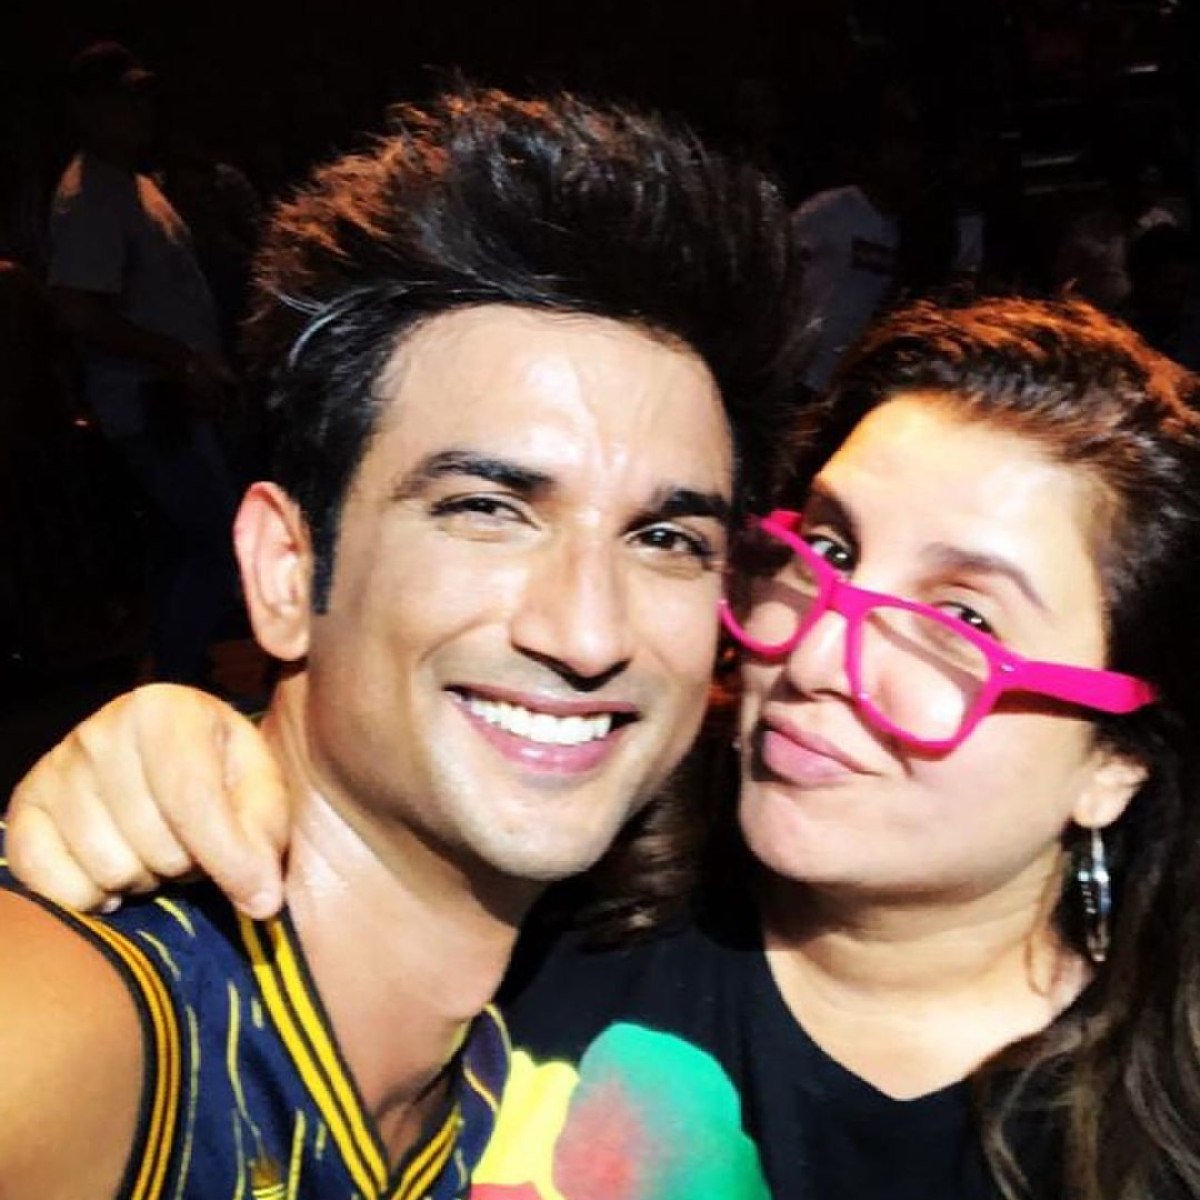 Filmfare Awards 2021: Farah Khan pens heartfelt note after bagging Best Choreography for Sushant Singh Rajput's 'Dil Bechara'